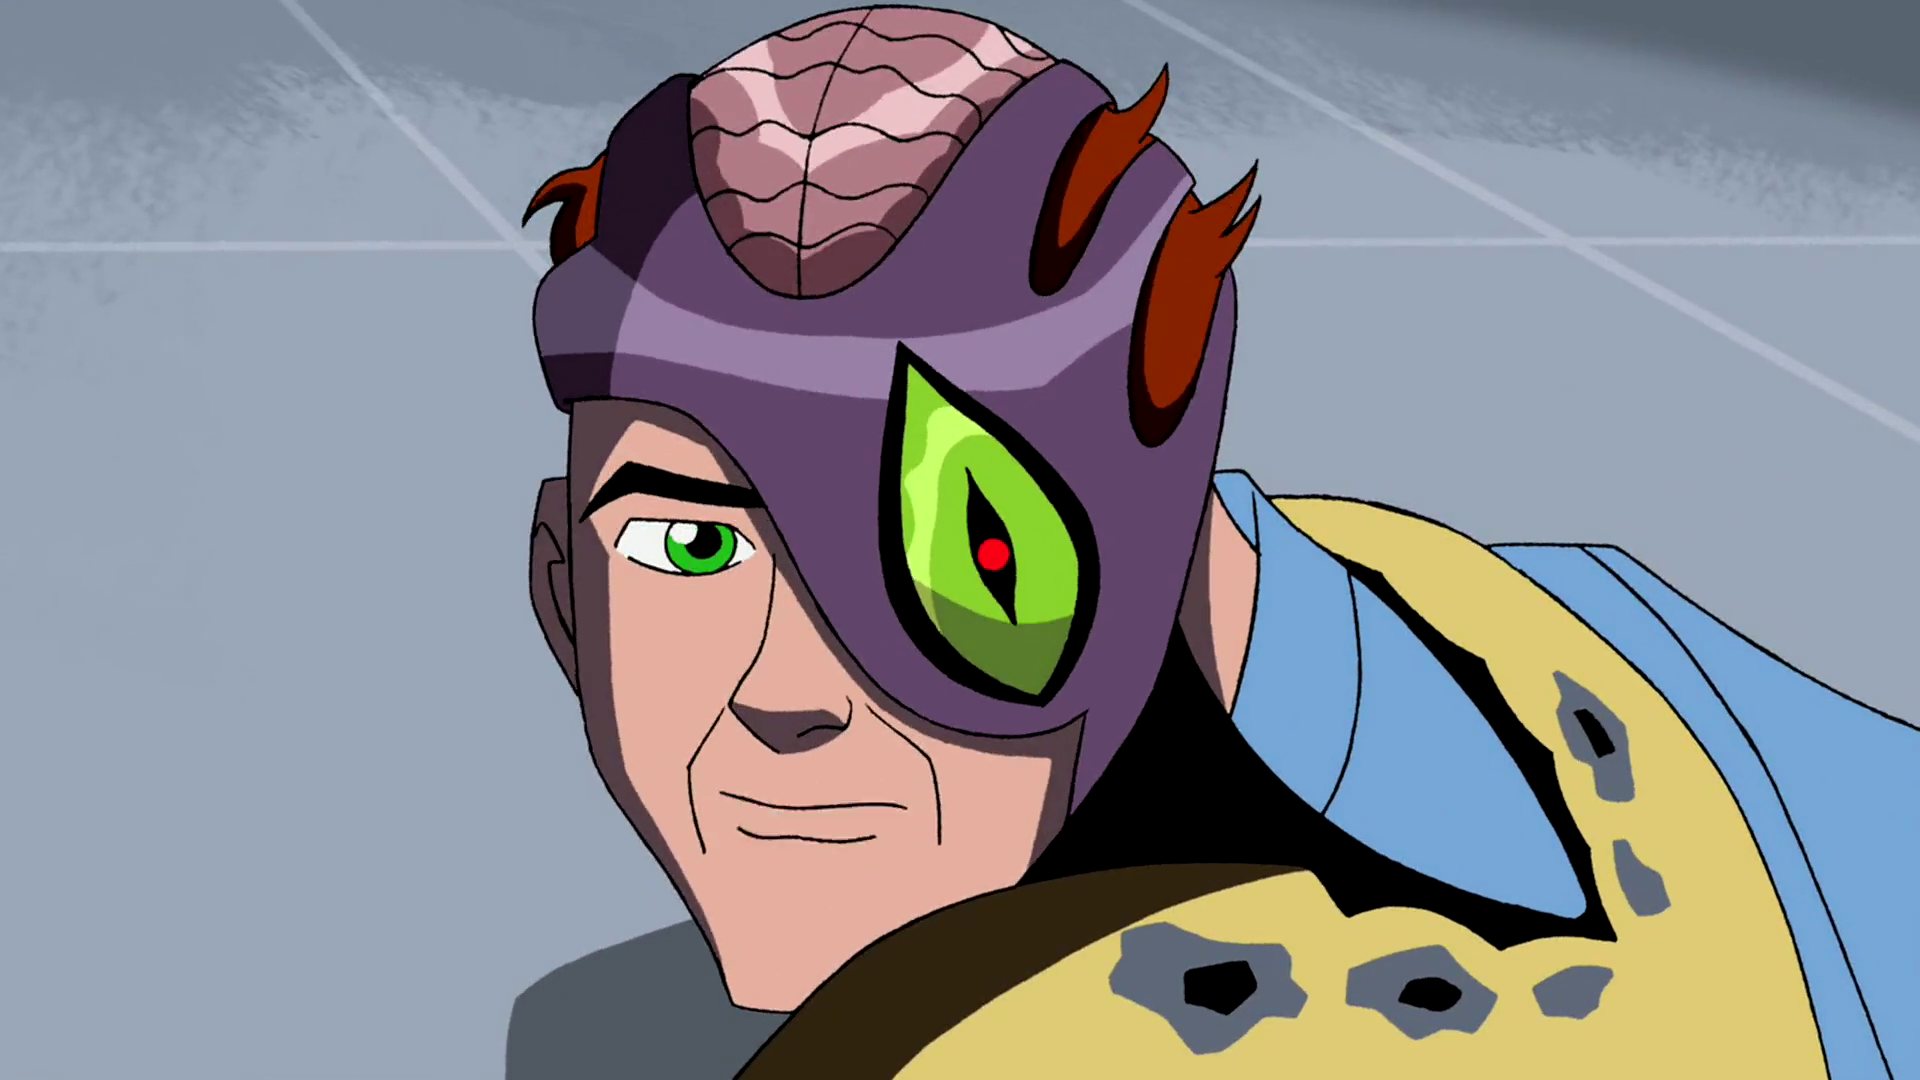 Xenocyte | Ben 10 Wiki | FANDOM powered by Wikia